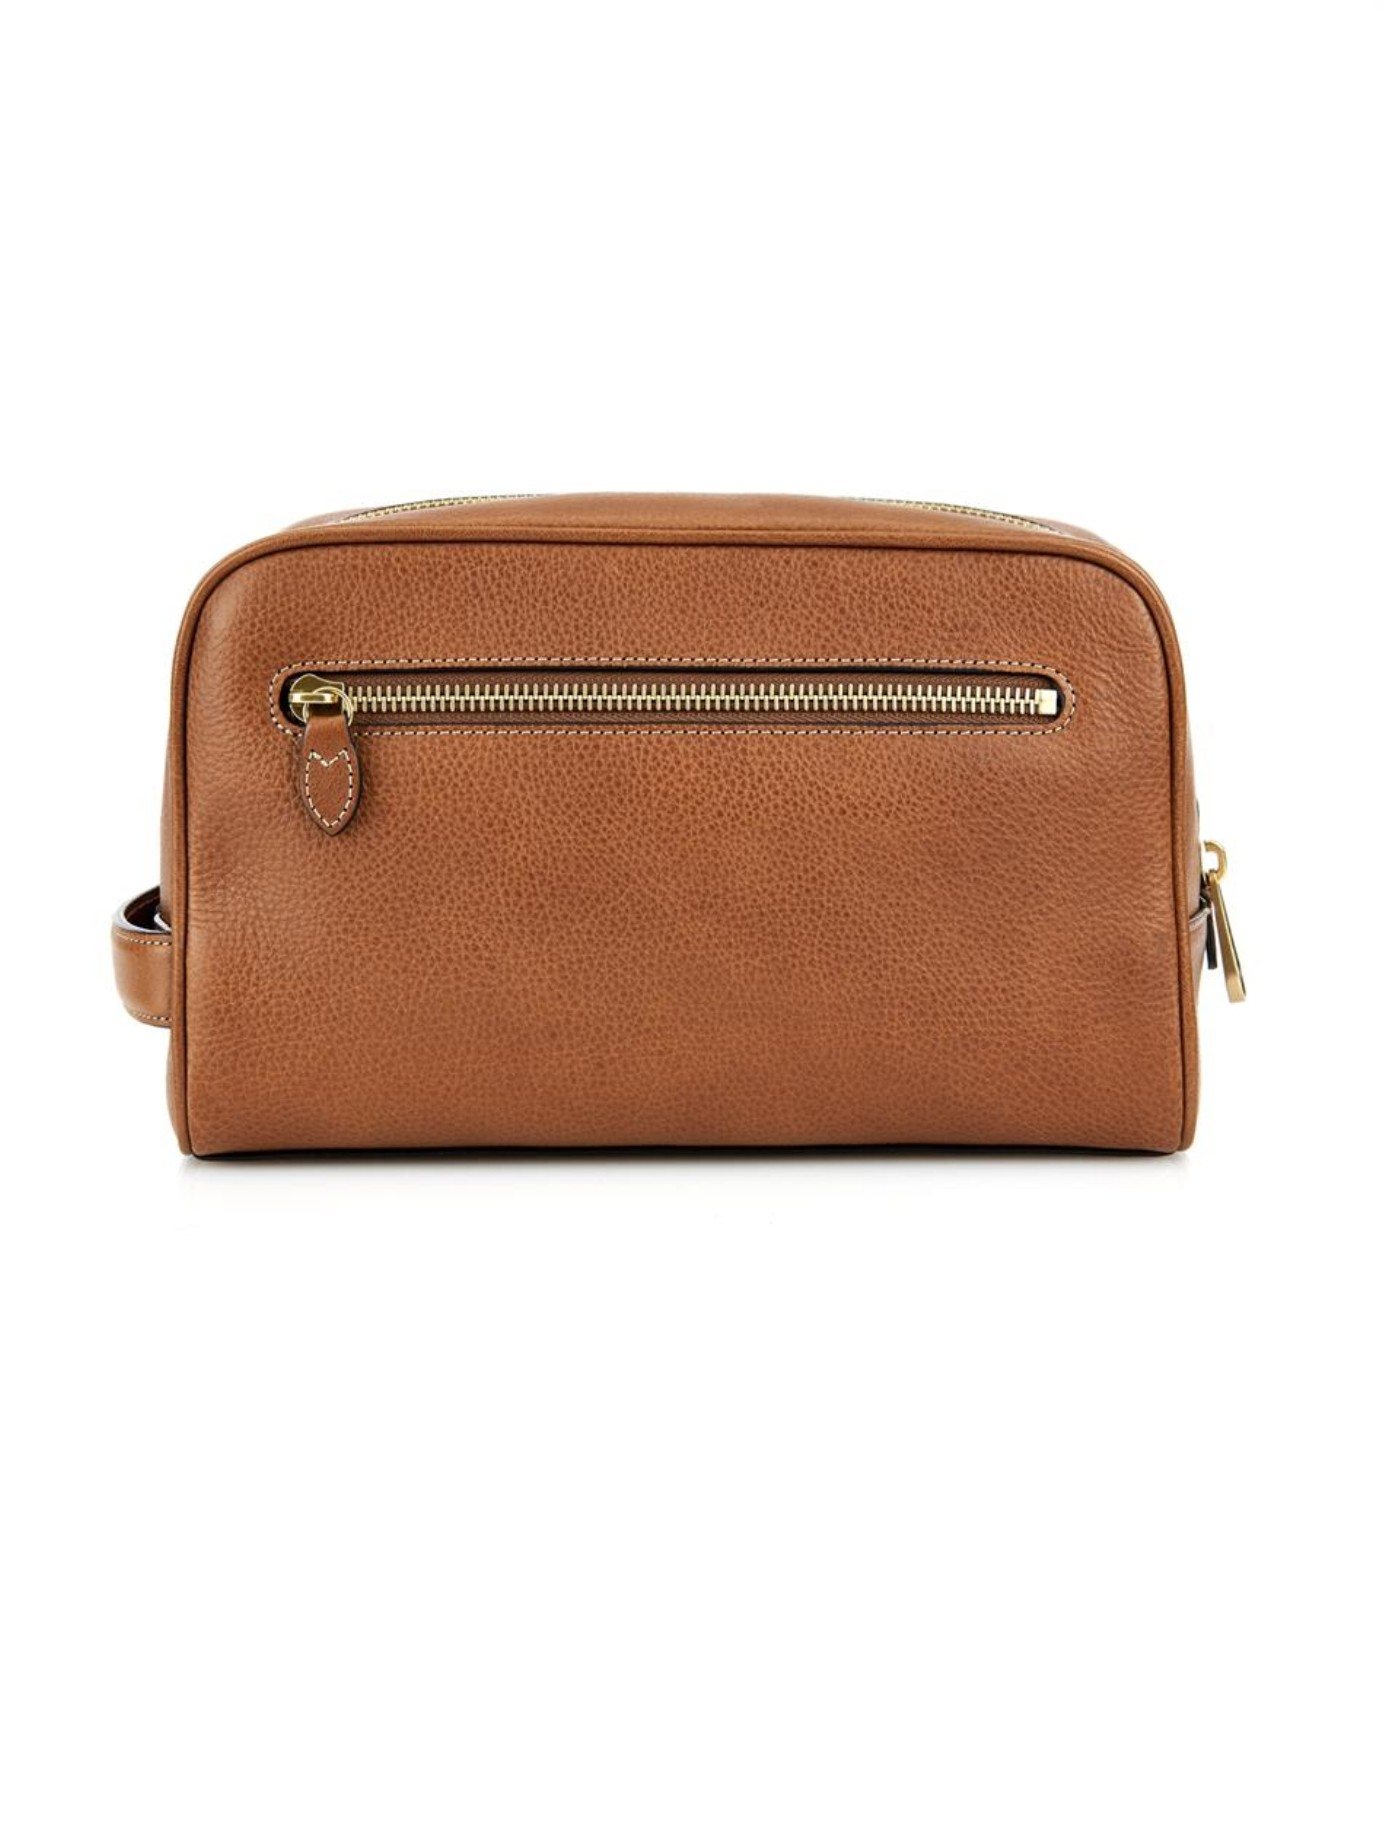 2dcdd545c9d7 ... discount mulberry leather wash bag in brown for men lyst fa30f 5d109